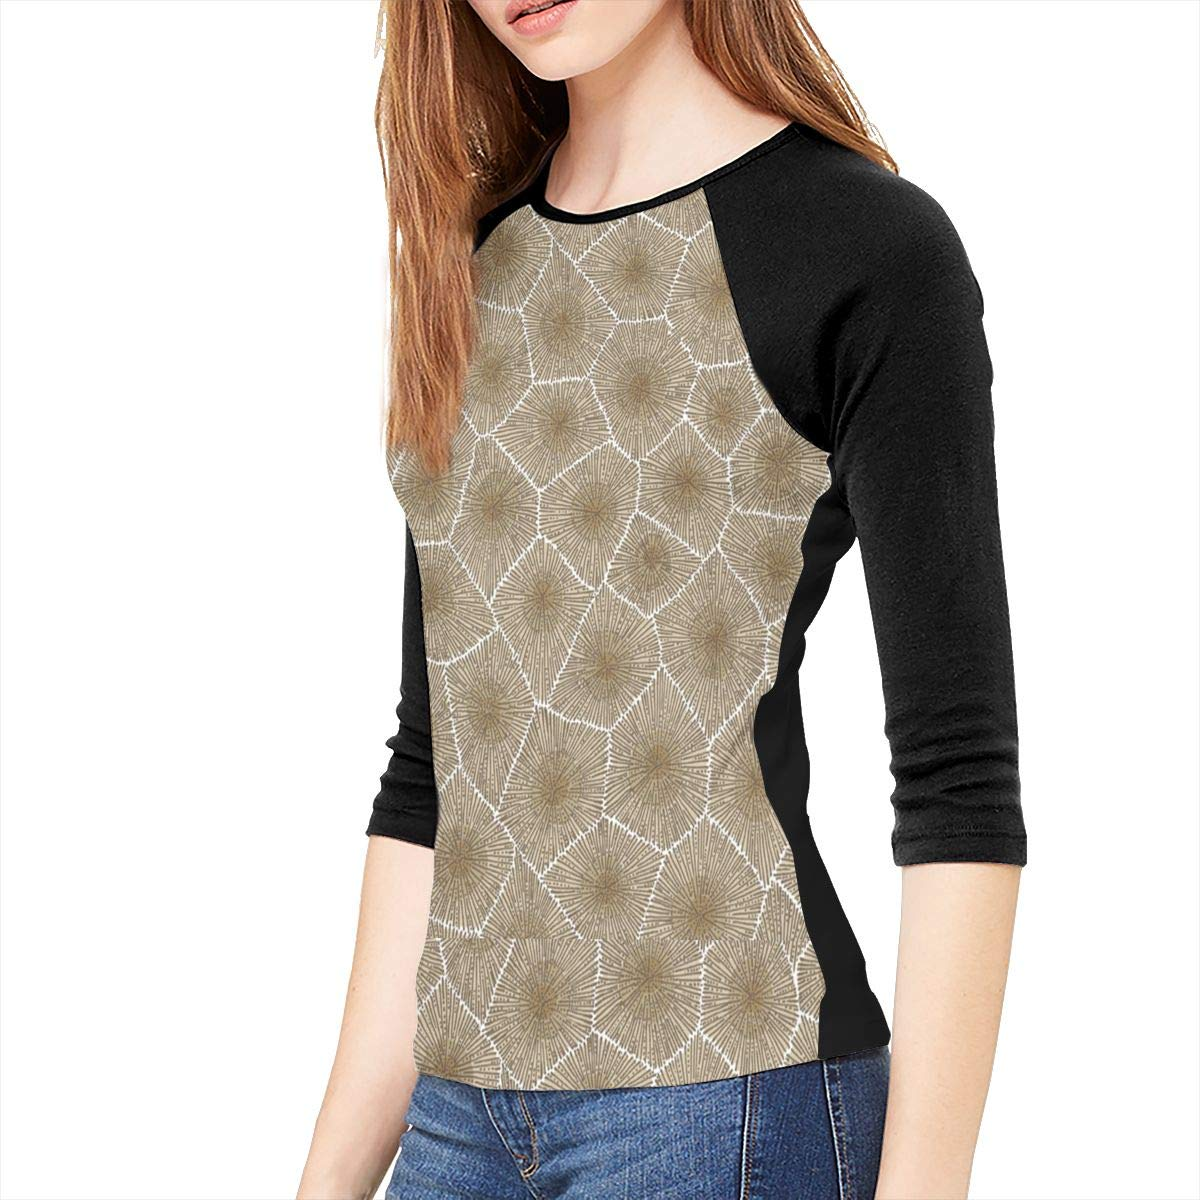 SHDFhgHGF Petoskey Stone Womens 3//4 Sleeve Casual Scoop Neck Tops Tee